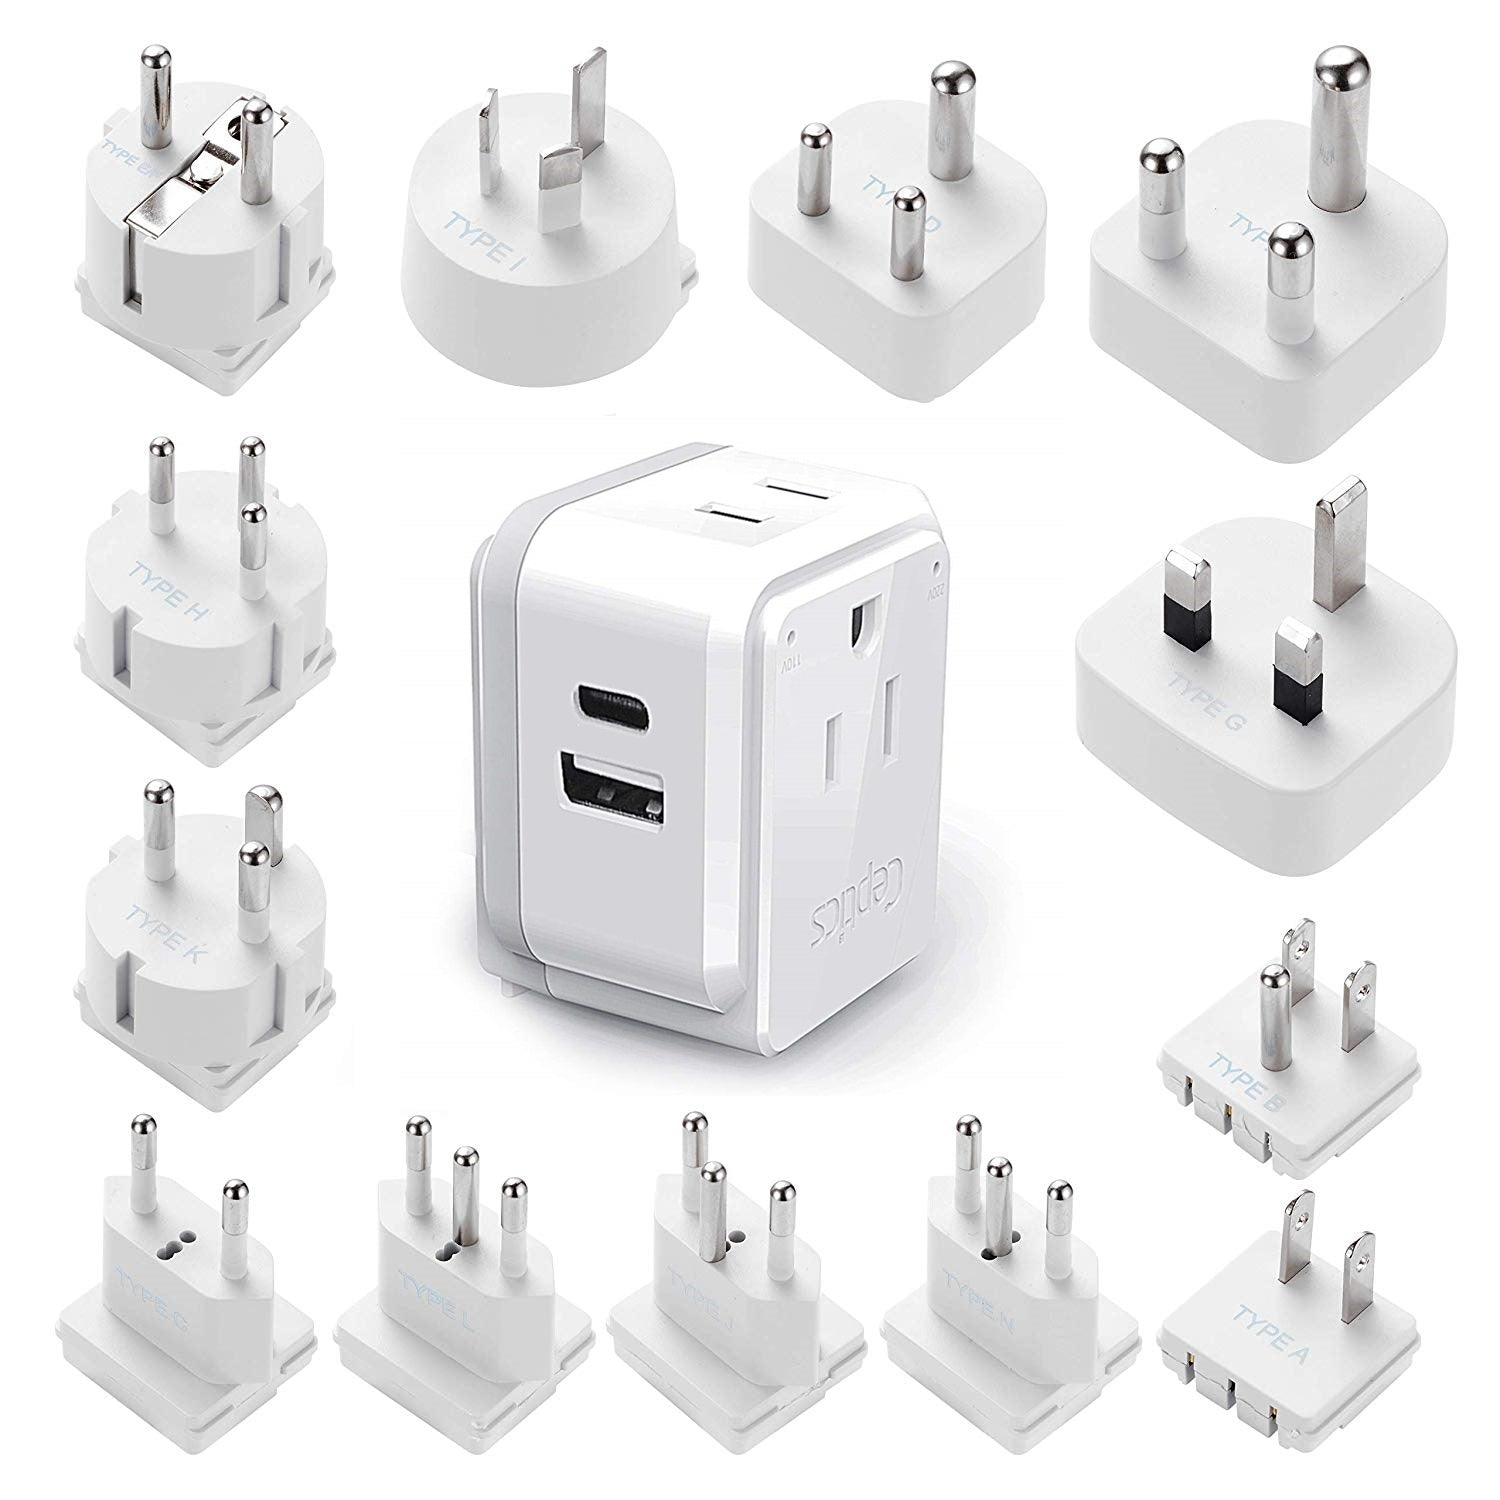 USA Travel Adapter - Type B - 4 in 1 - 2 USB Ports (GP4-5)